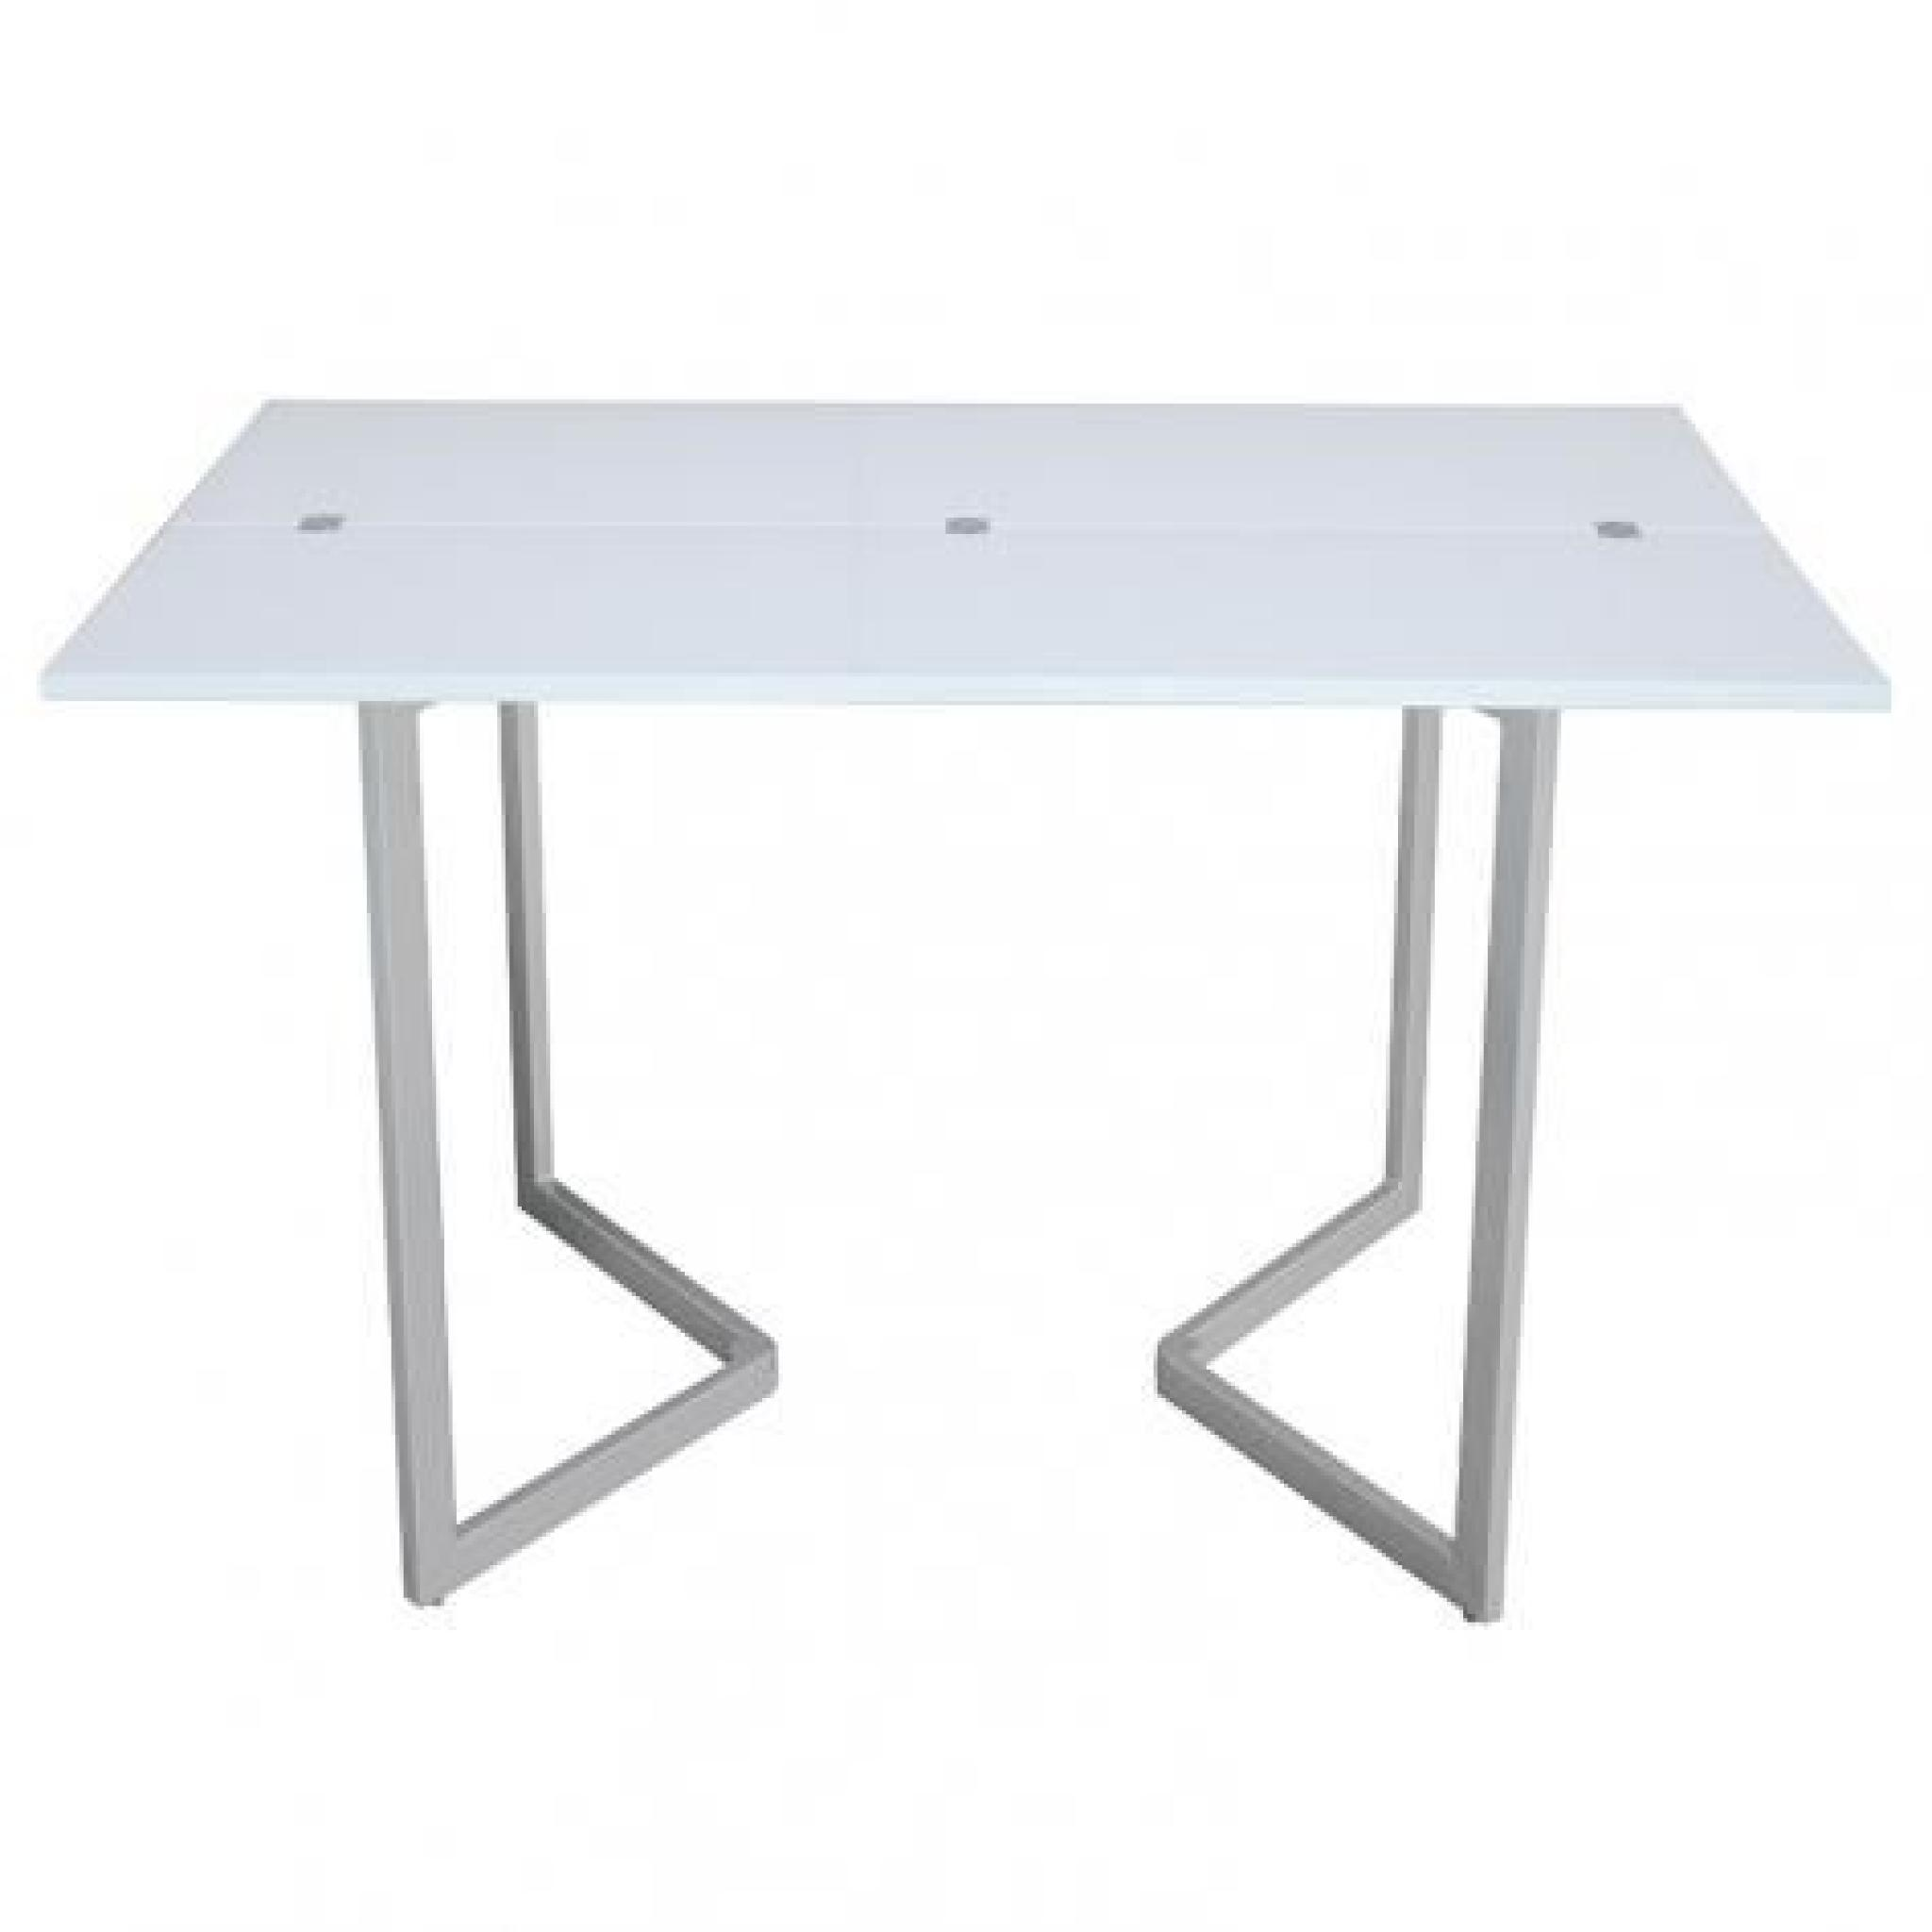 Table console extensible habitat finest table console for Table extensible 12 personnes